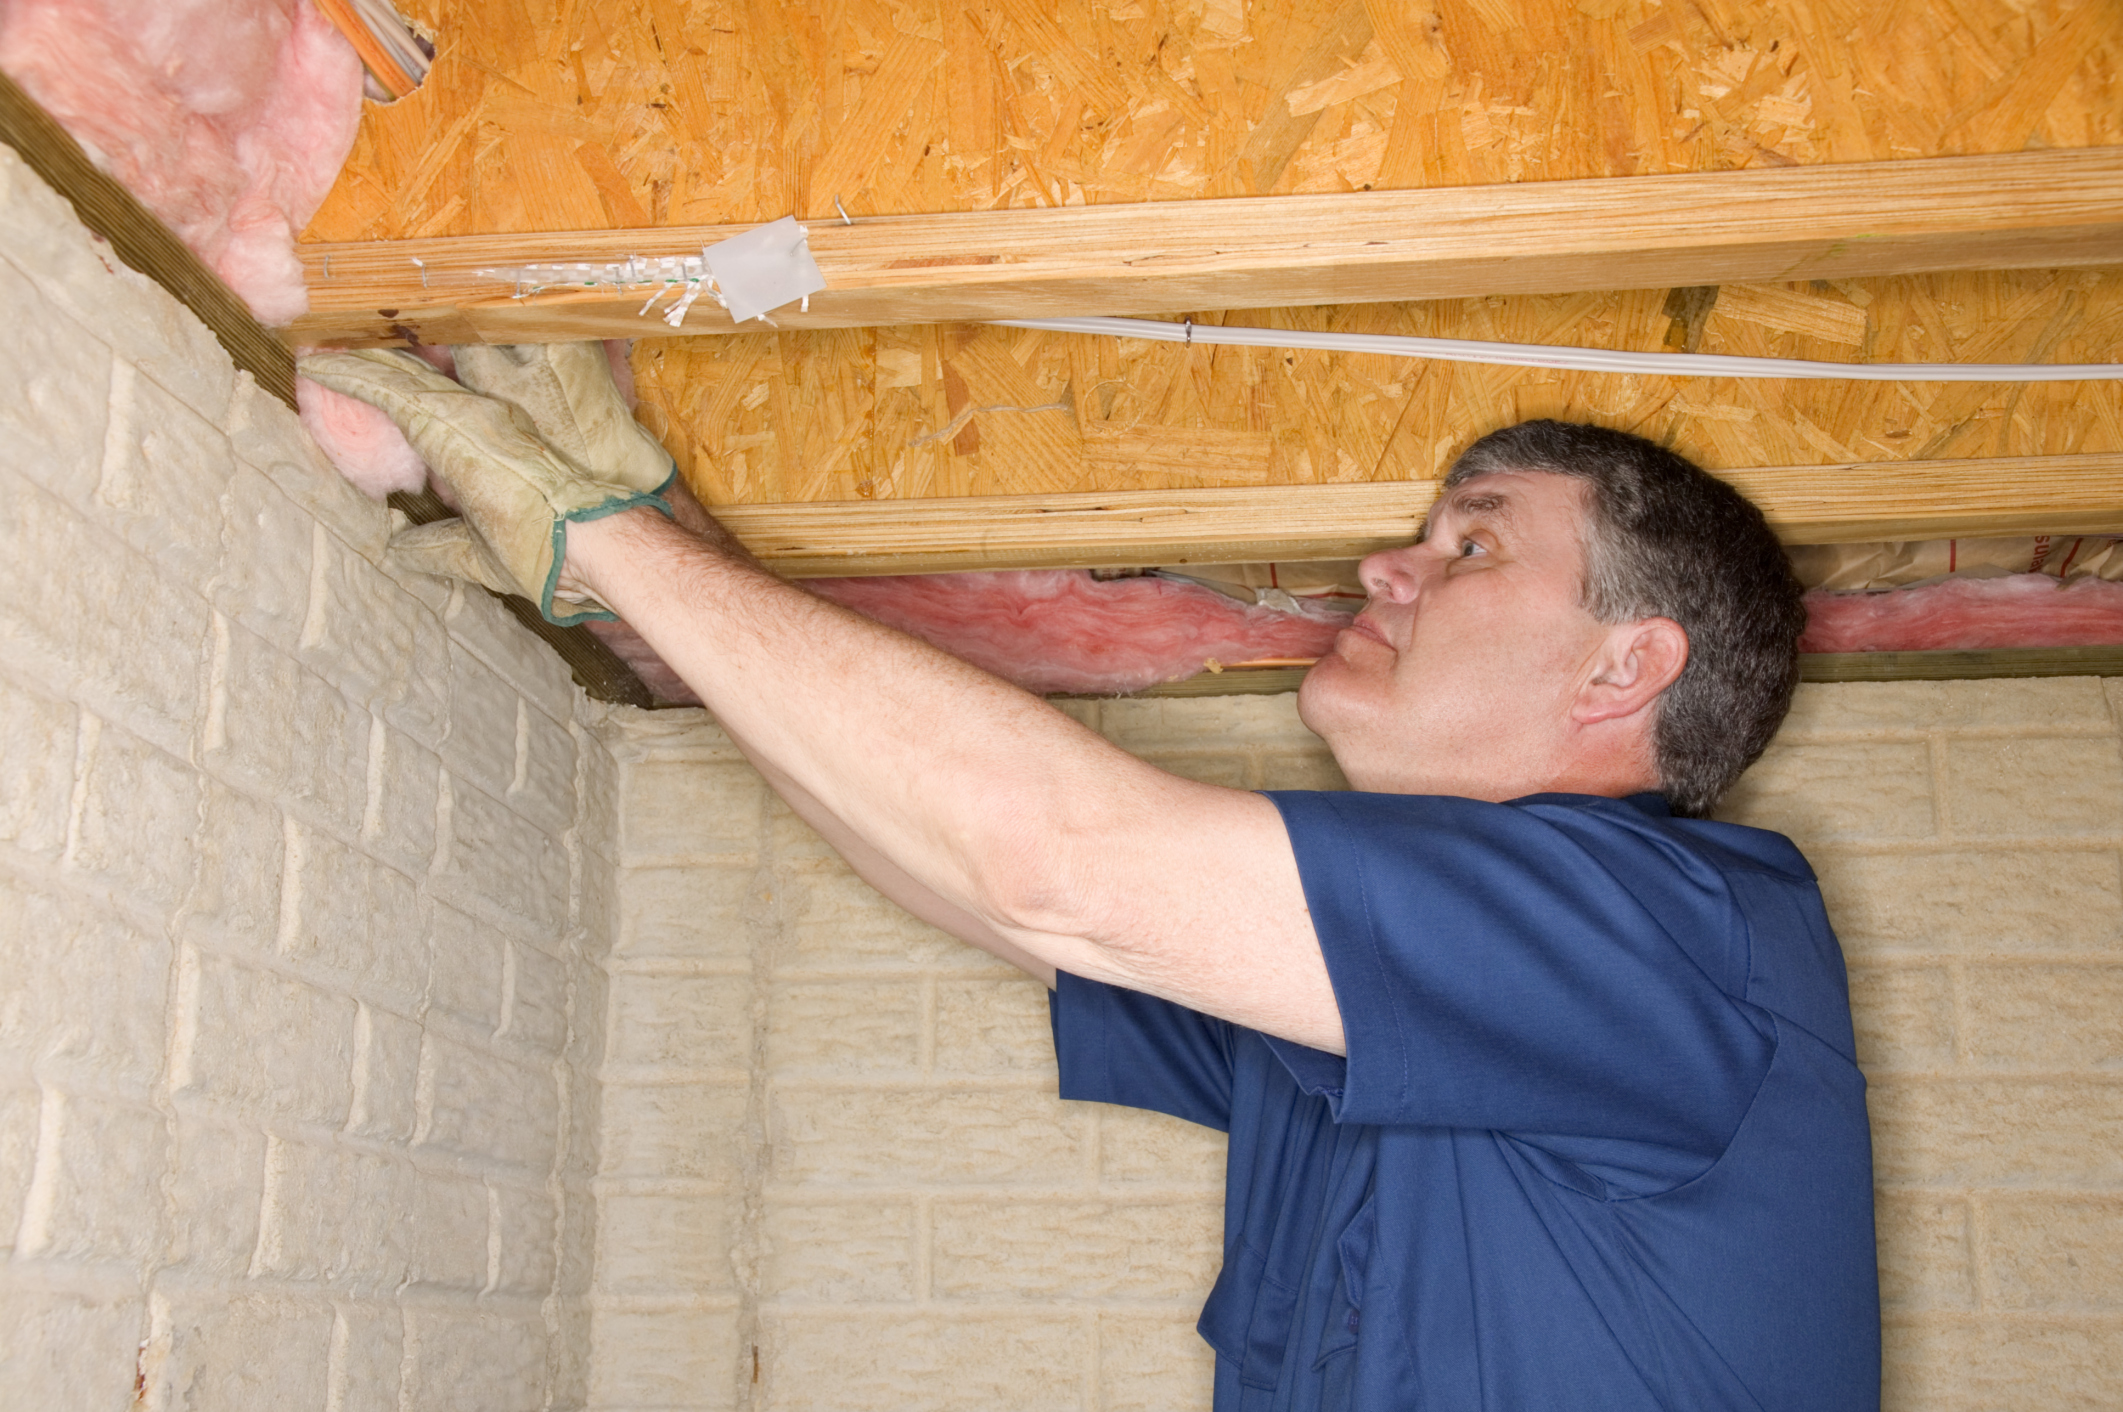 Diy Faced Or Unfaced Insulation For A Basement Ceiling